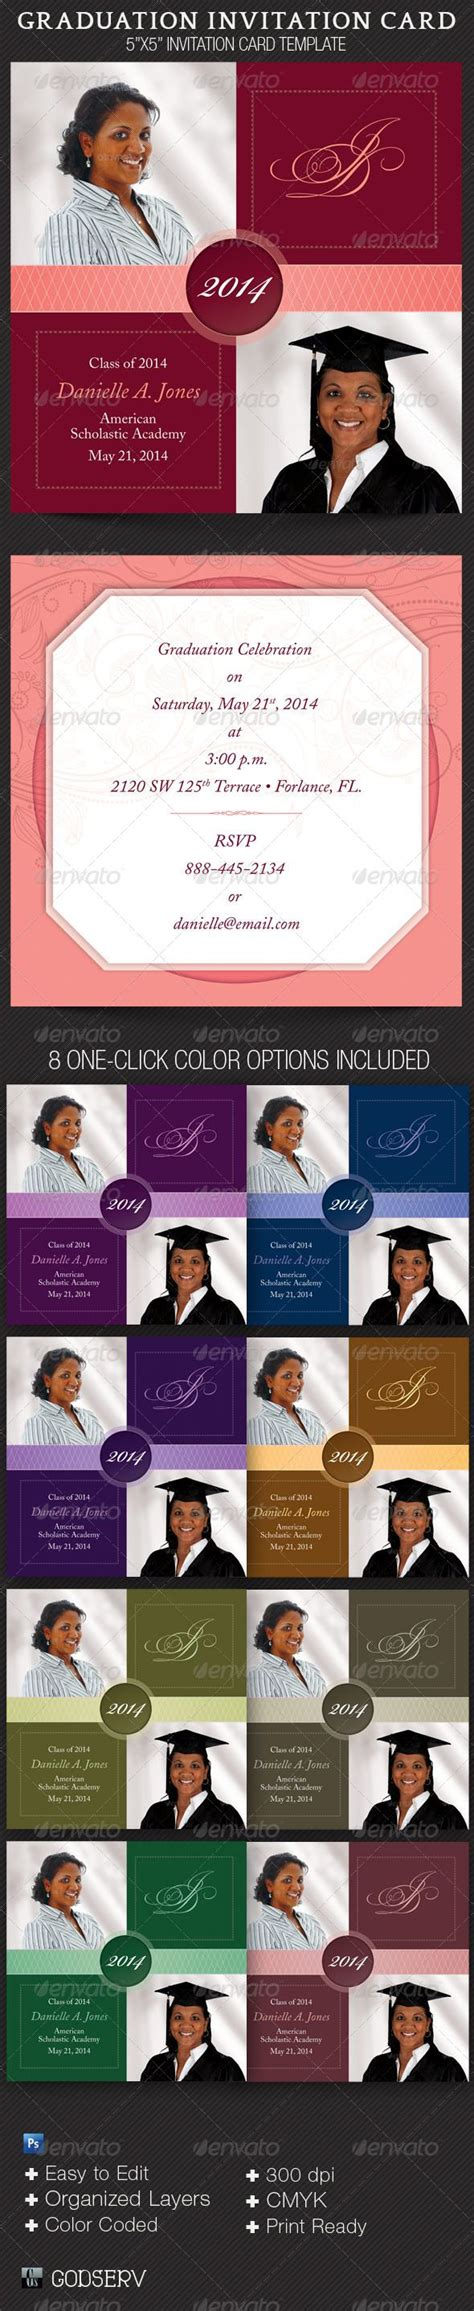 graduation card indesign template 1000 images about community events templates on